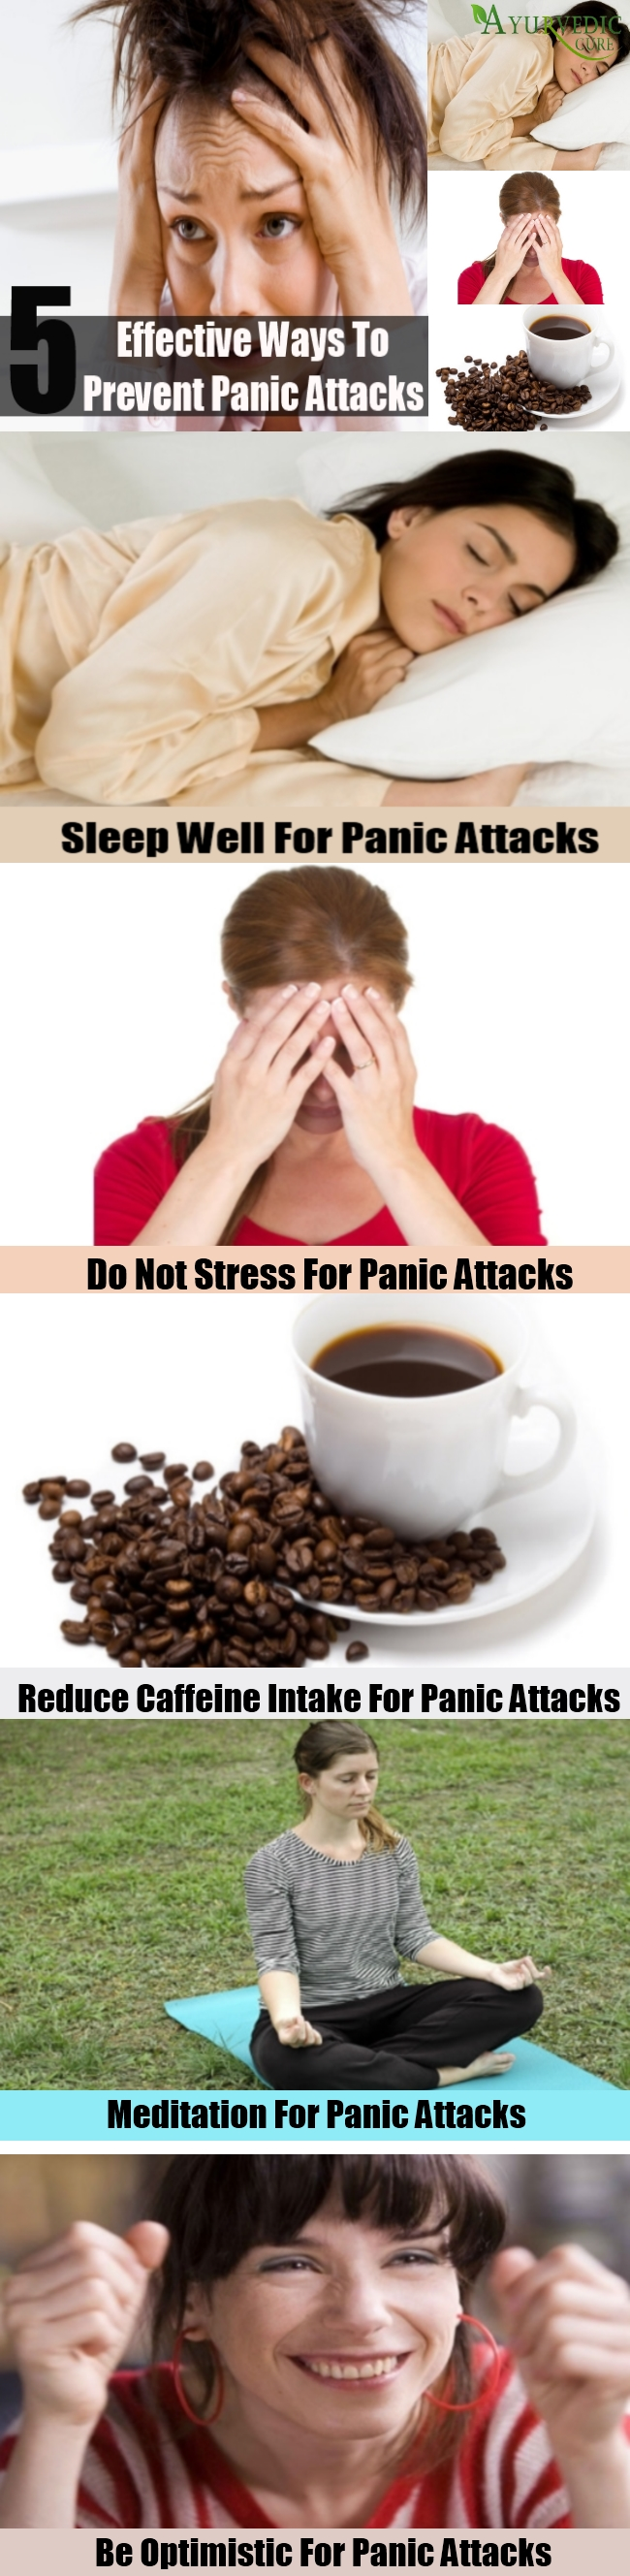 5 Effective Ways To Prevent Panic Attacks